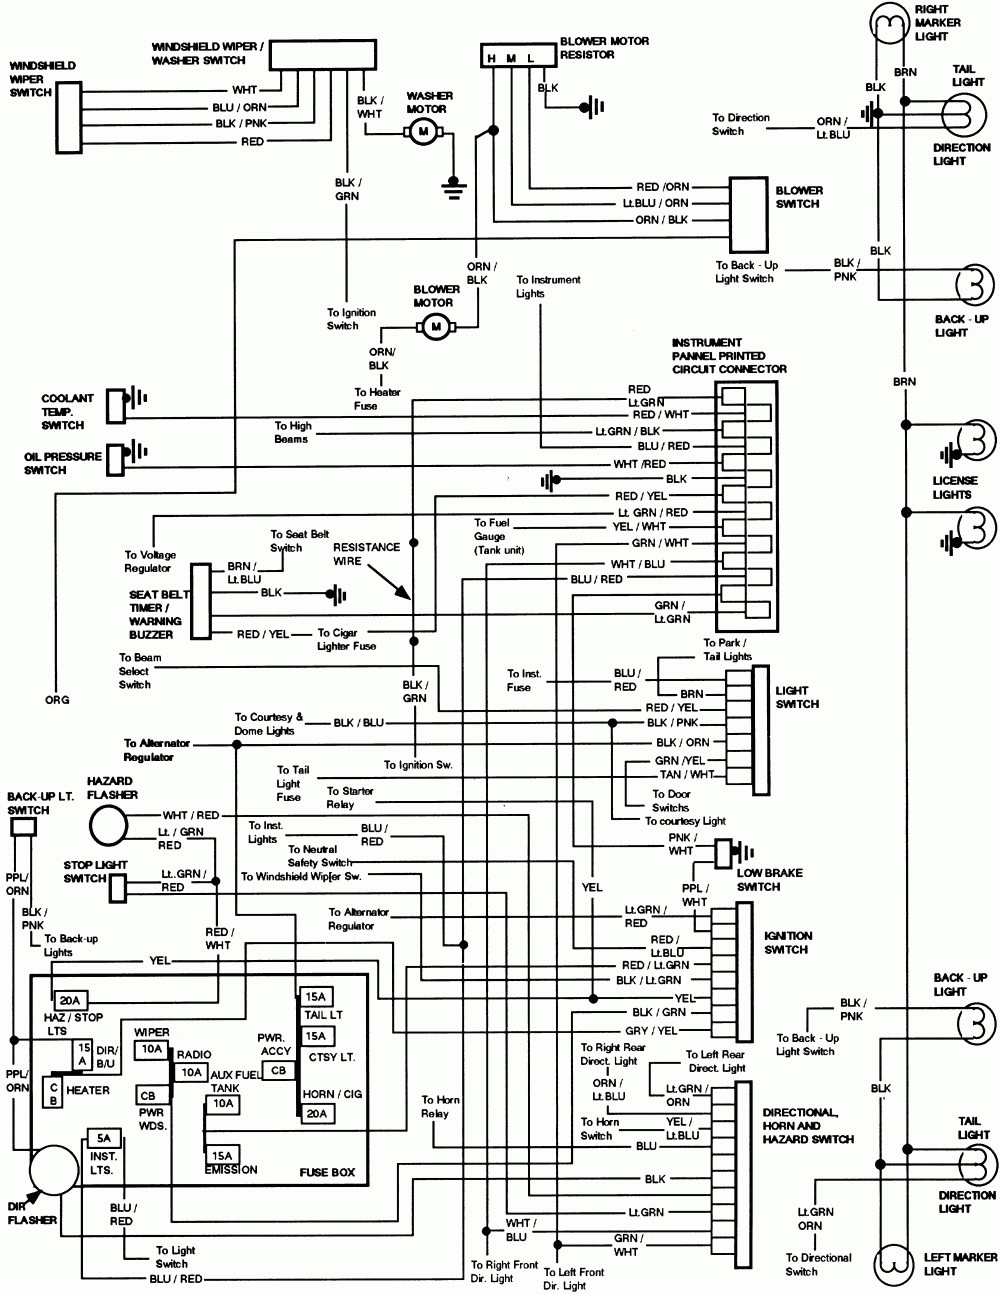 1990 ford f150 starter solenoid wiring diagram awesome 86 ford engine diagram wiring diagrams schematics of 1990 ford f150 starter solenoid wiring diagram 1992 ford bronco alternator wiring wiring diagram description